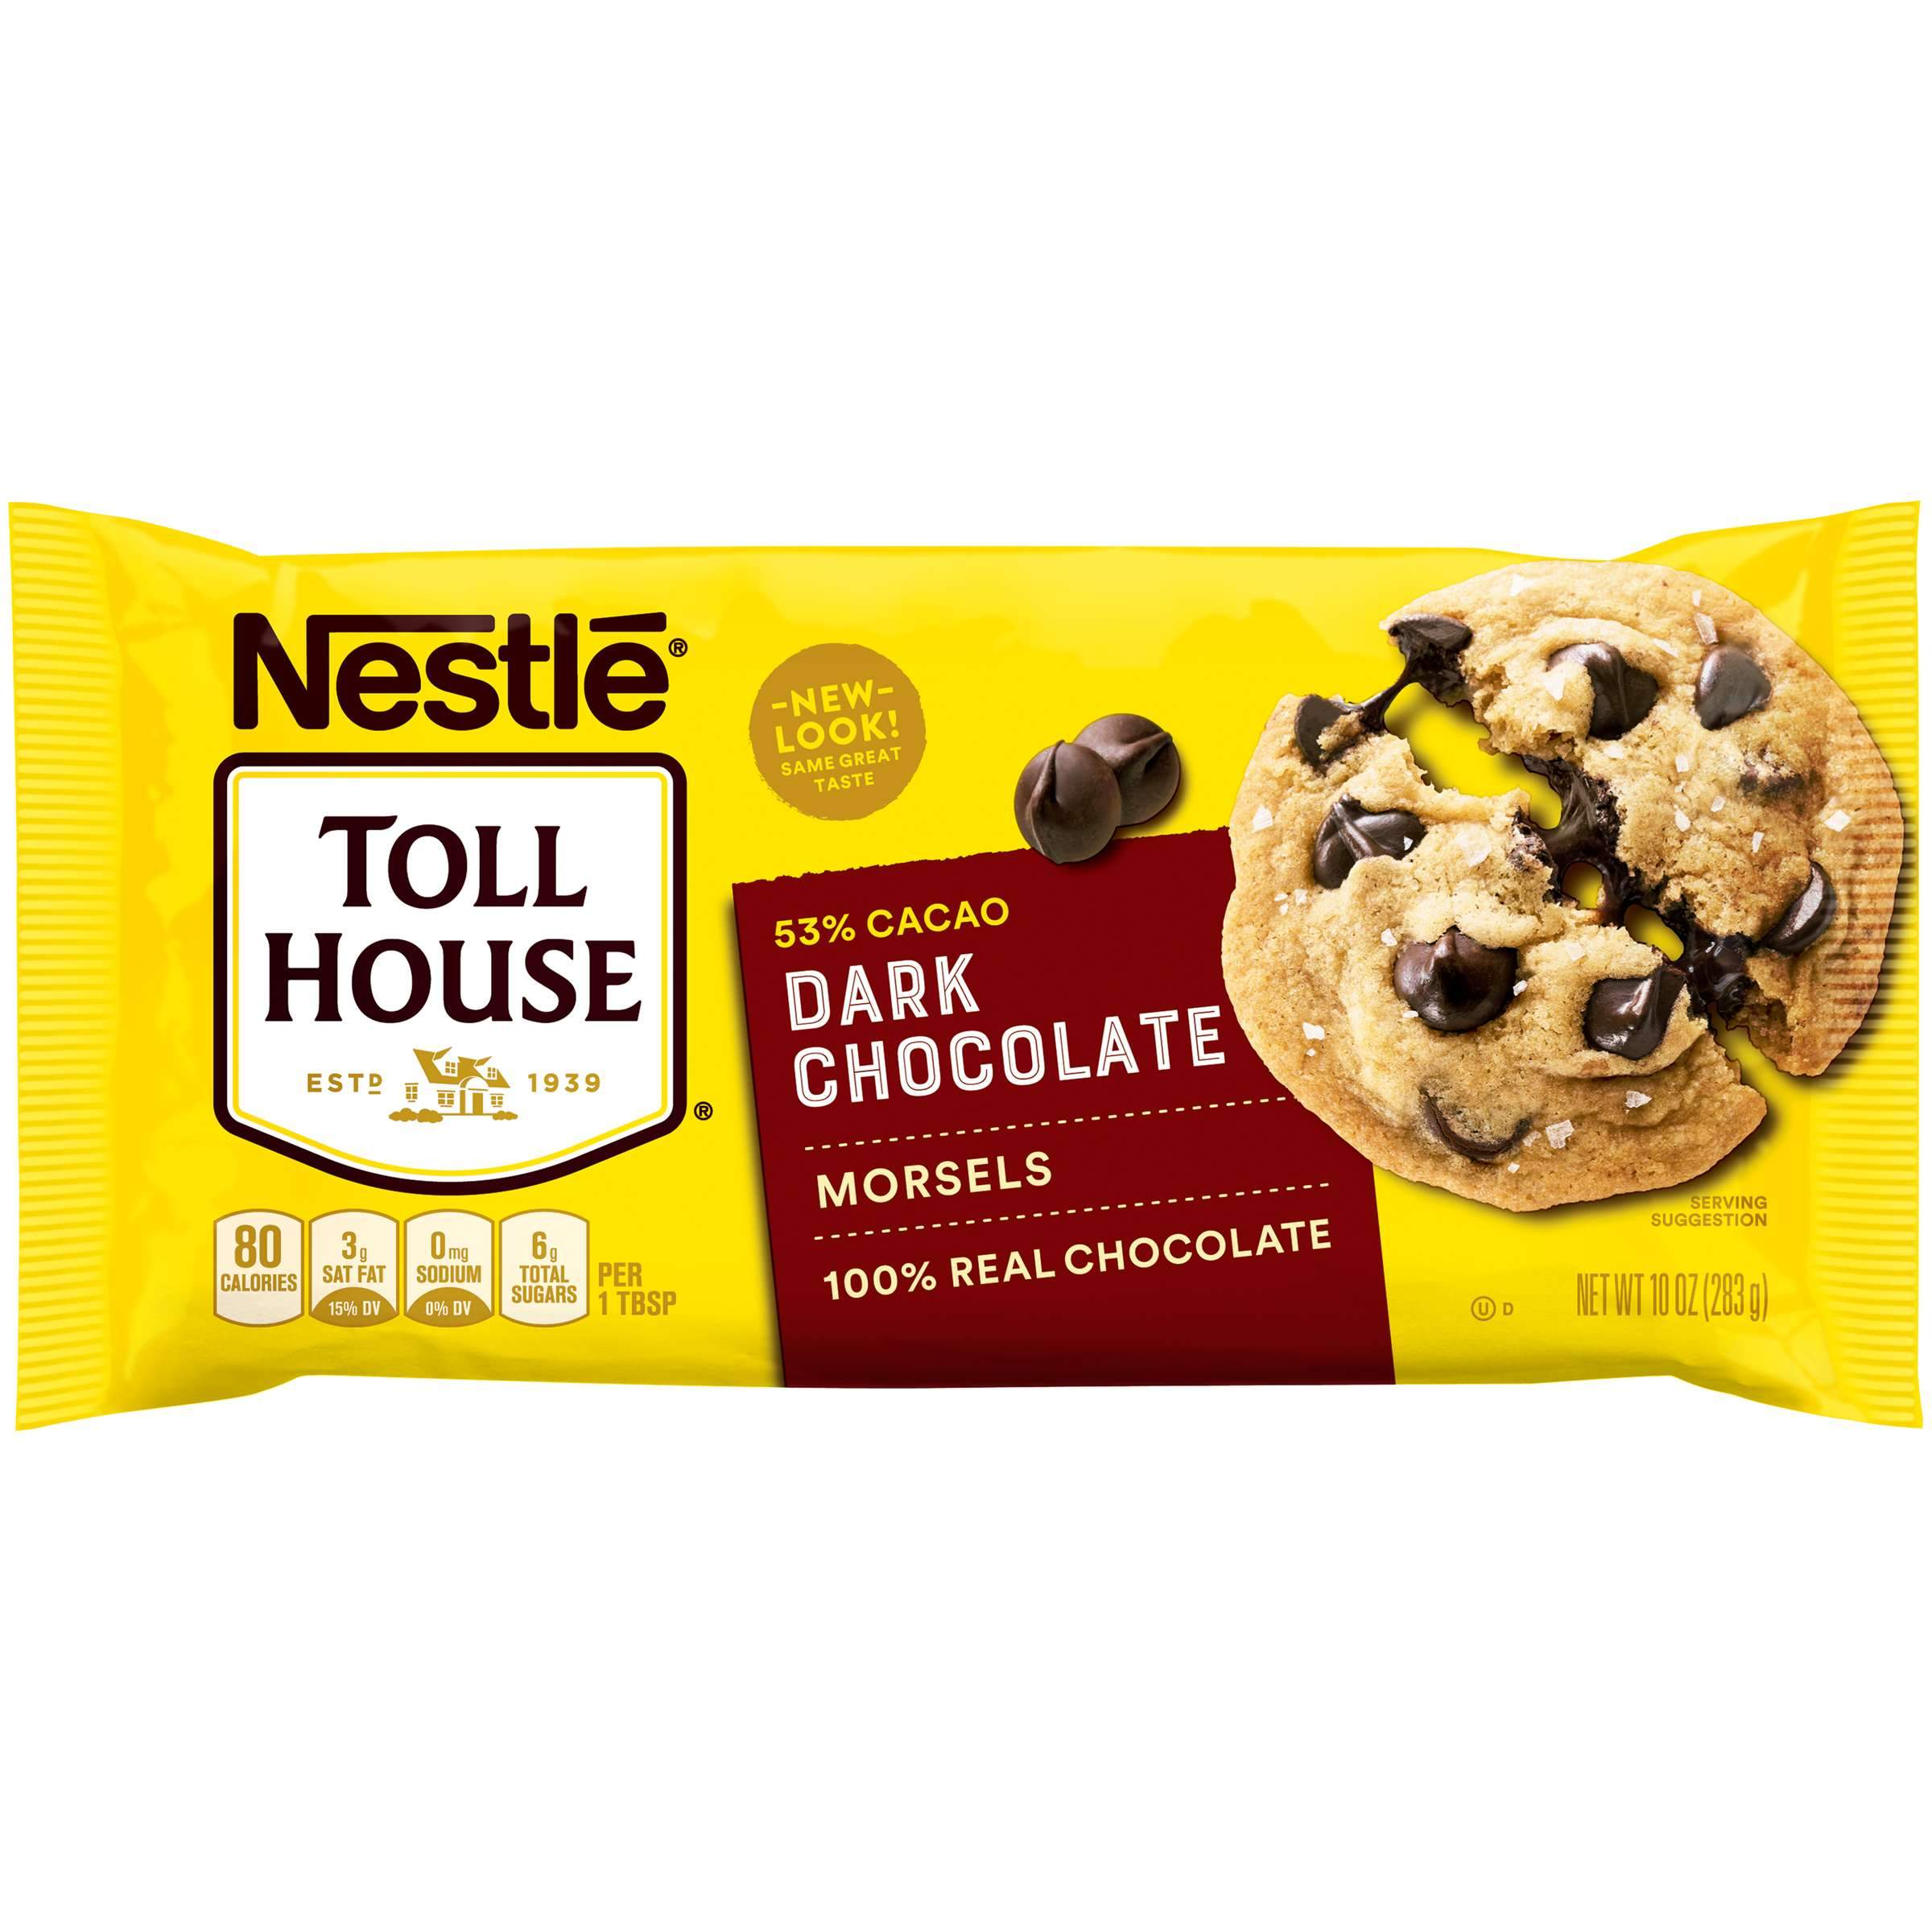 Nestlé Toll House Baking Morsels Toll House Dark Chocolate 10 Ounce